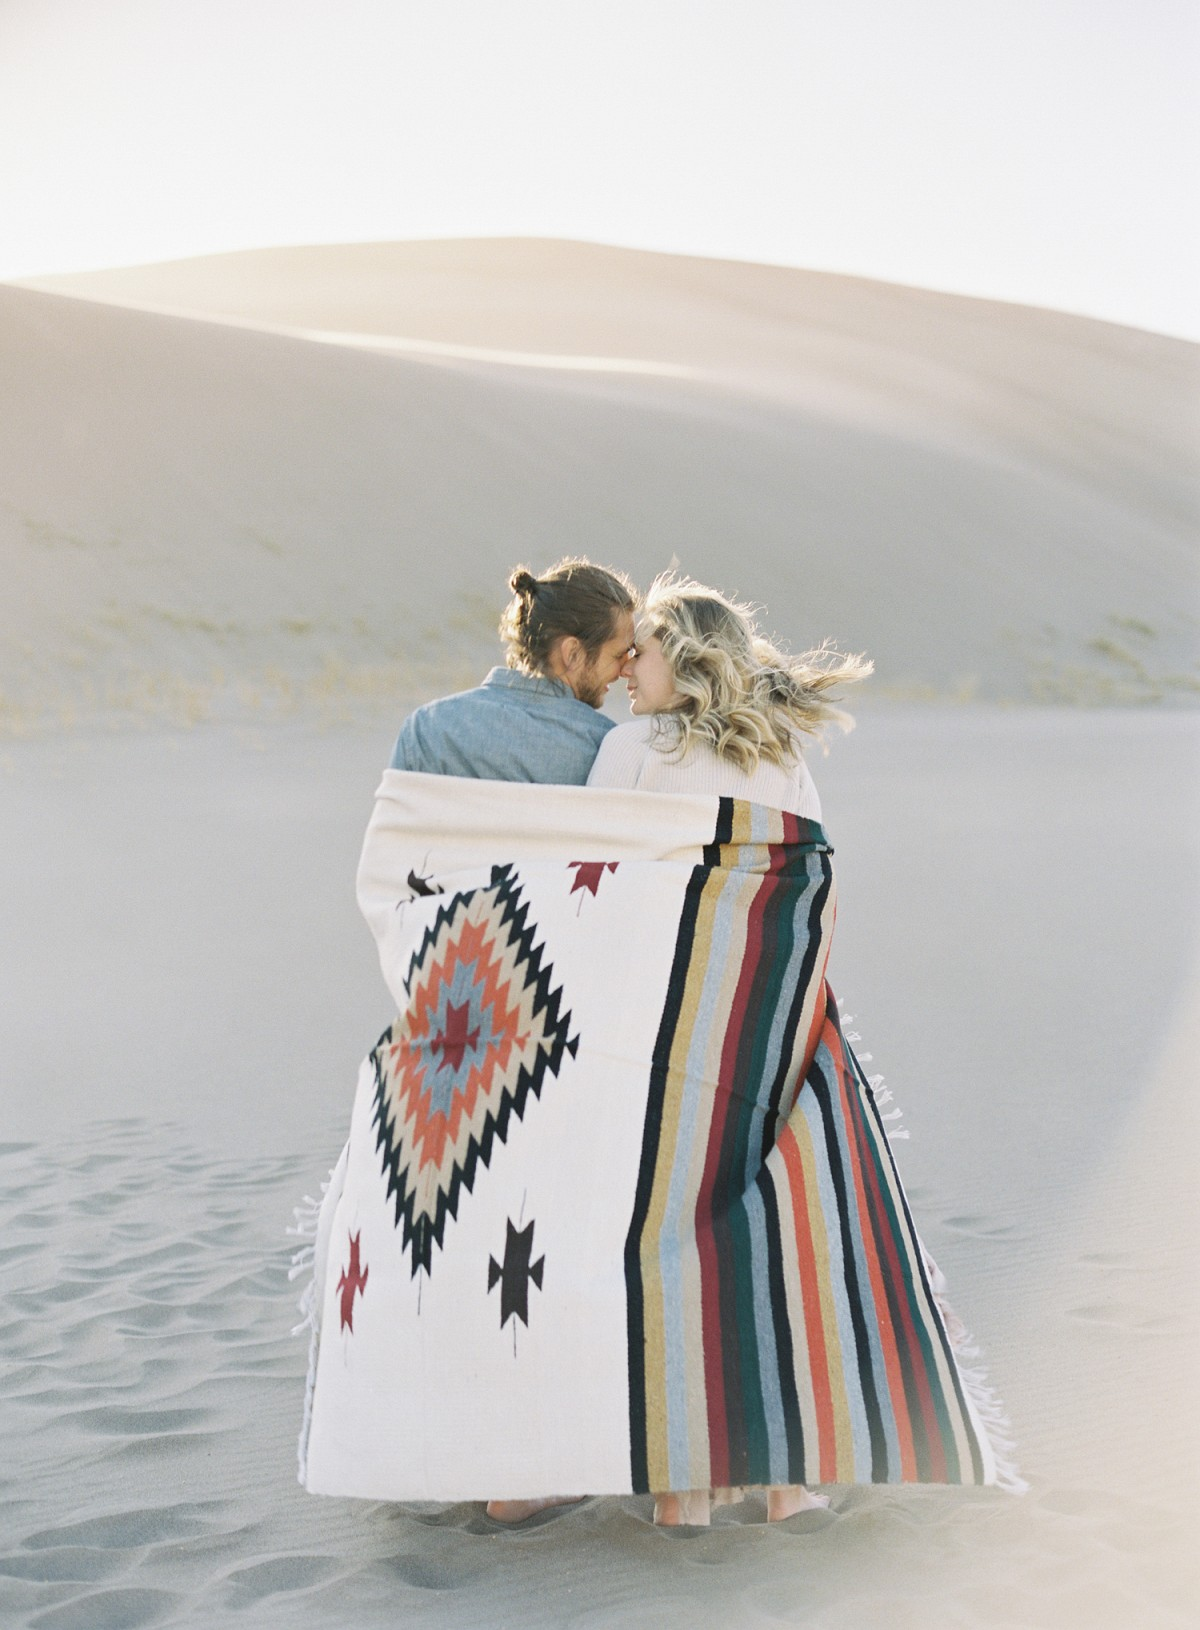 Sunset Engagement Session in the Sand Dunes